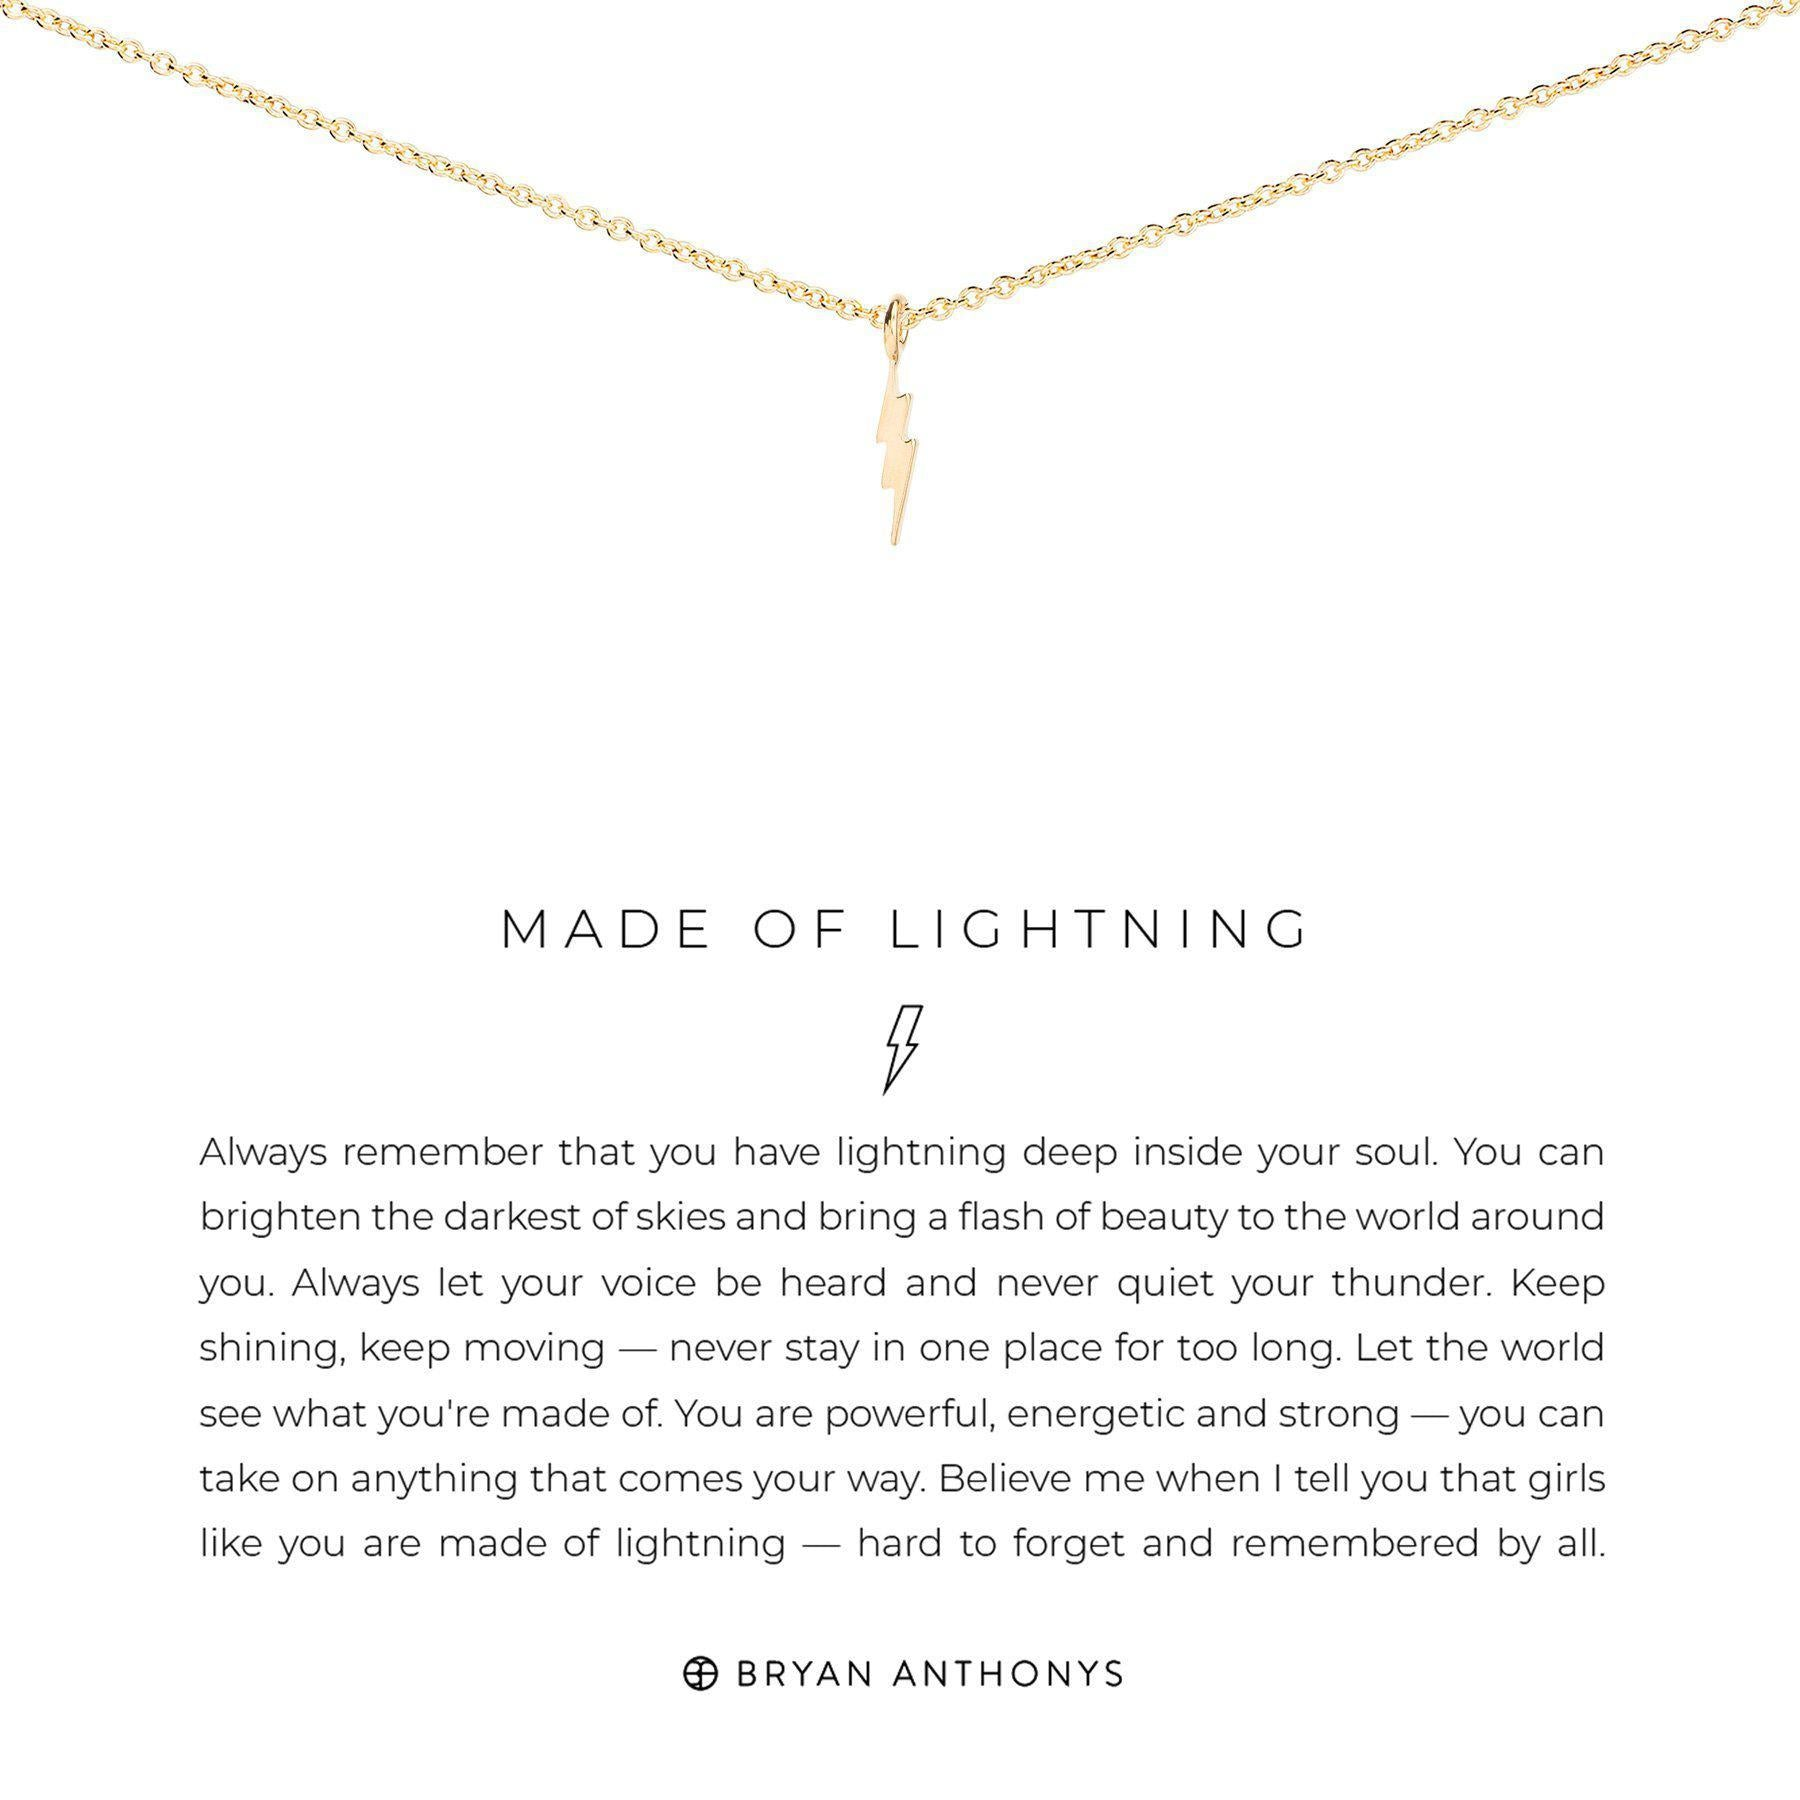 Made of Lightening-Necklace-Bryan Anthonys-Gold-Lizzy's Pink Boutique